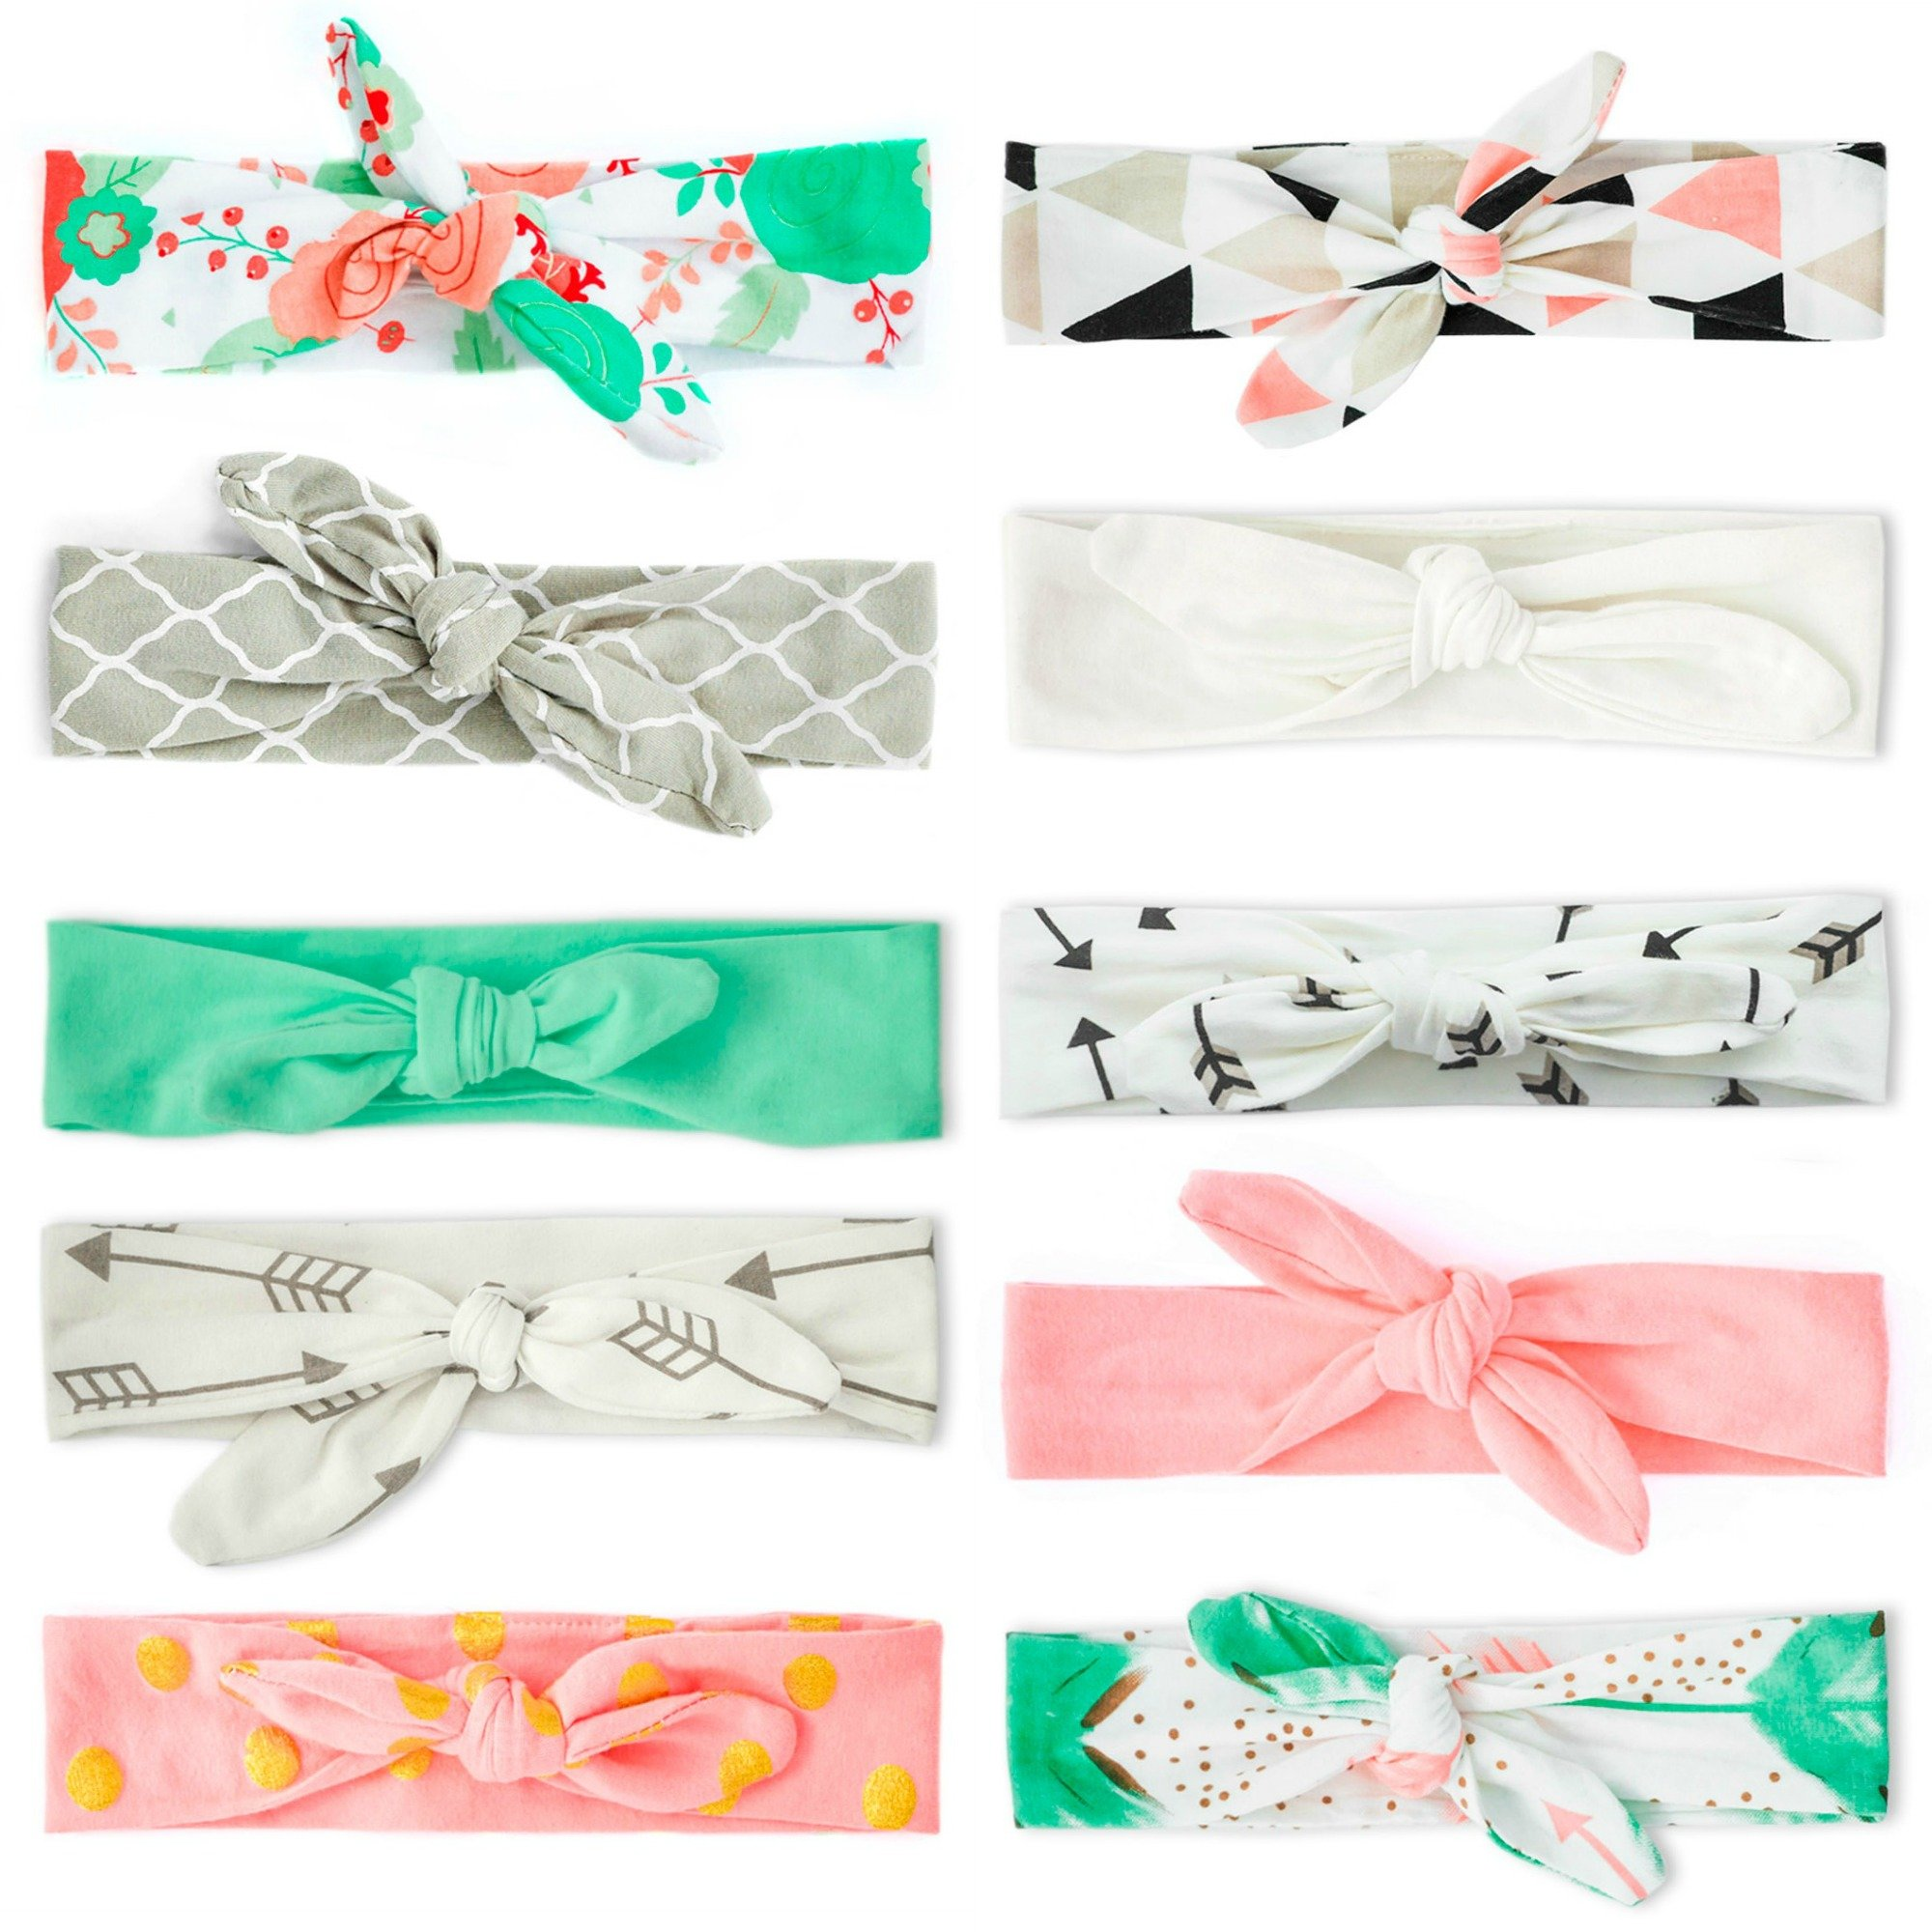 JLIKA Baby Girl Headbands 10 Pack Toddler Cotton Knotted Newborn Headband Headwrap Bows Hair Accessories